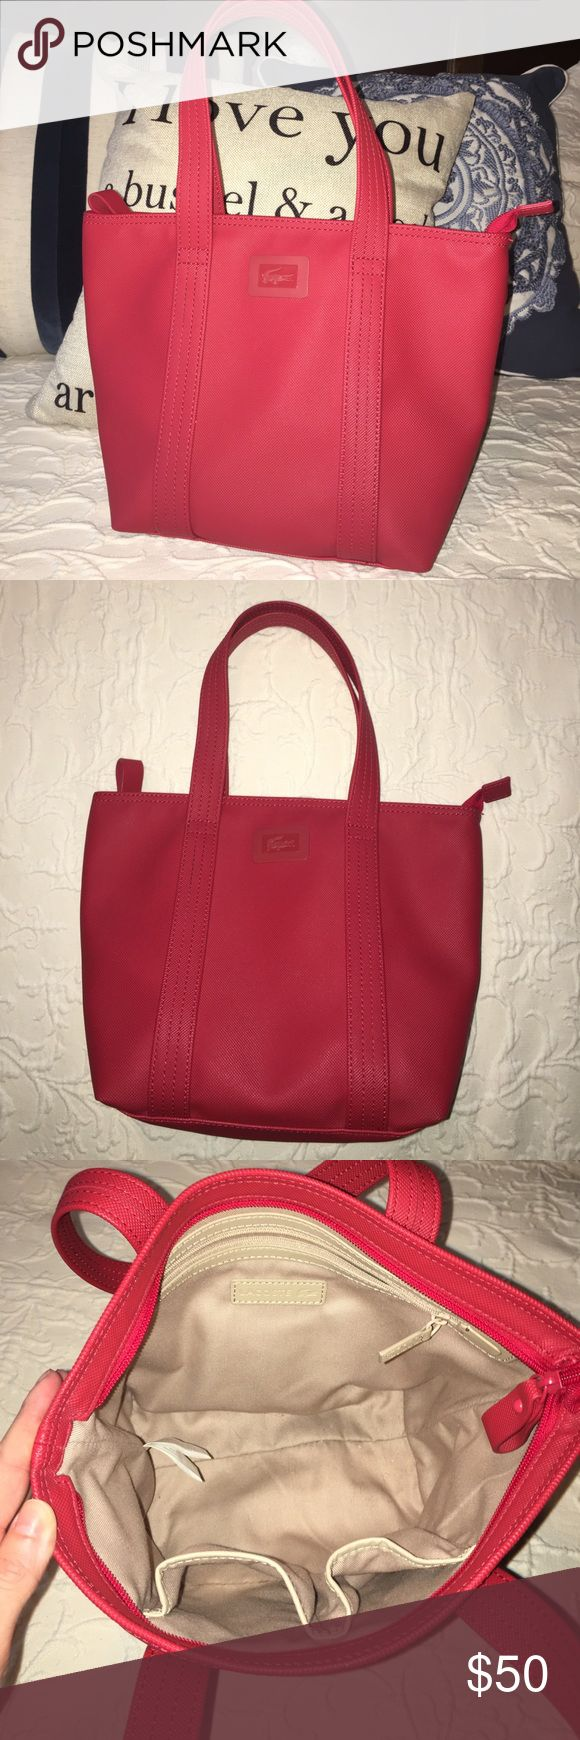 Small Lacoste red zip tote Lacoste red zip tote. Great condition!! Clean outside and interior. Purchased in Rome. Lacoste Bags Totes